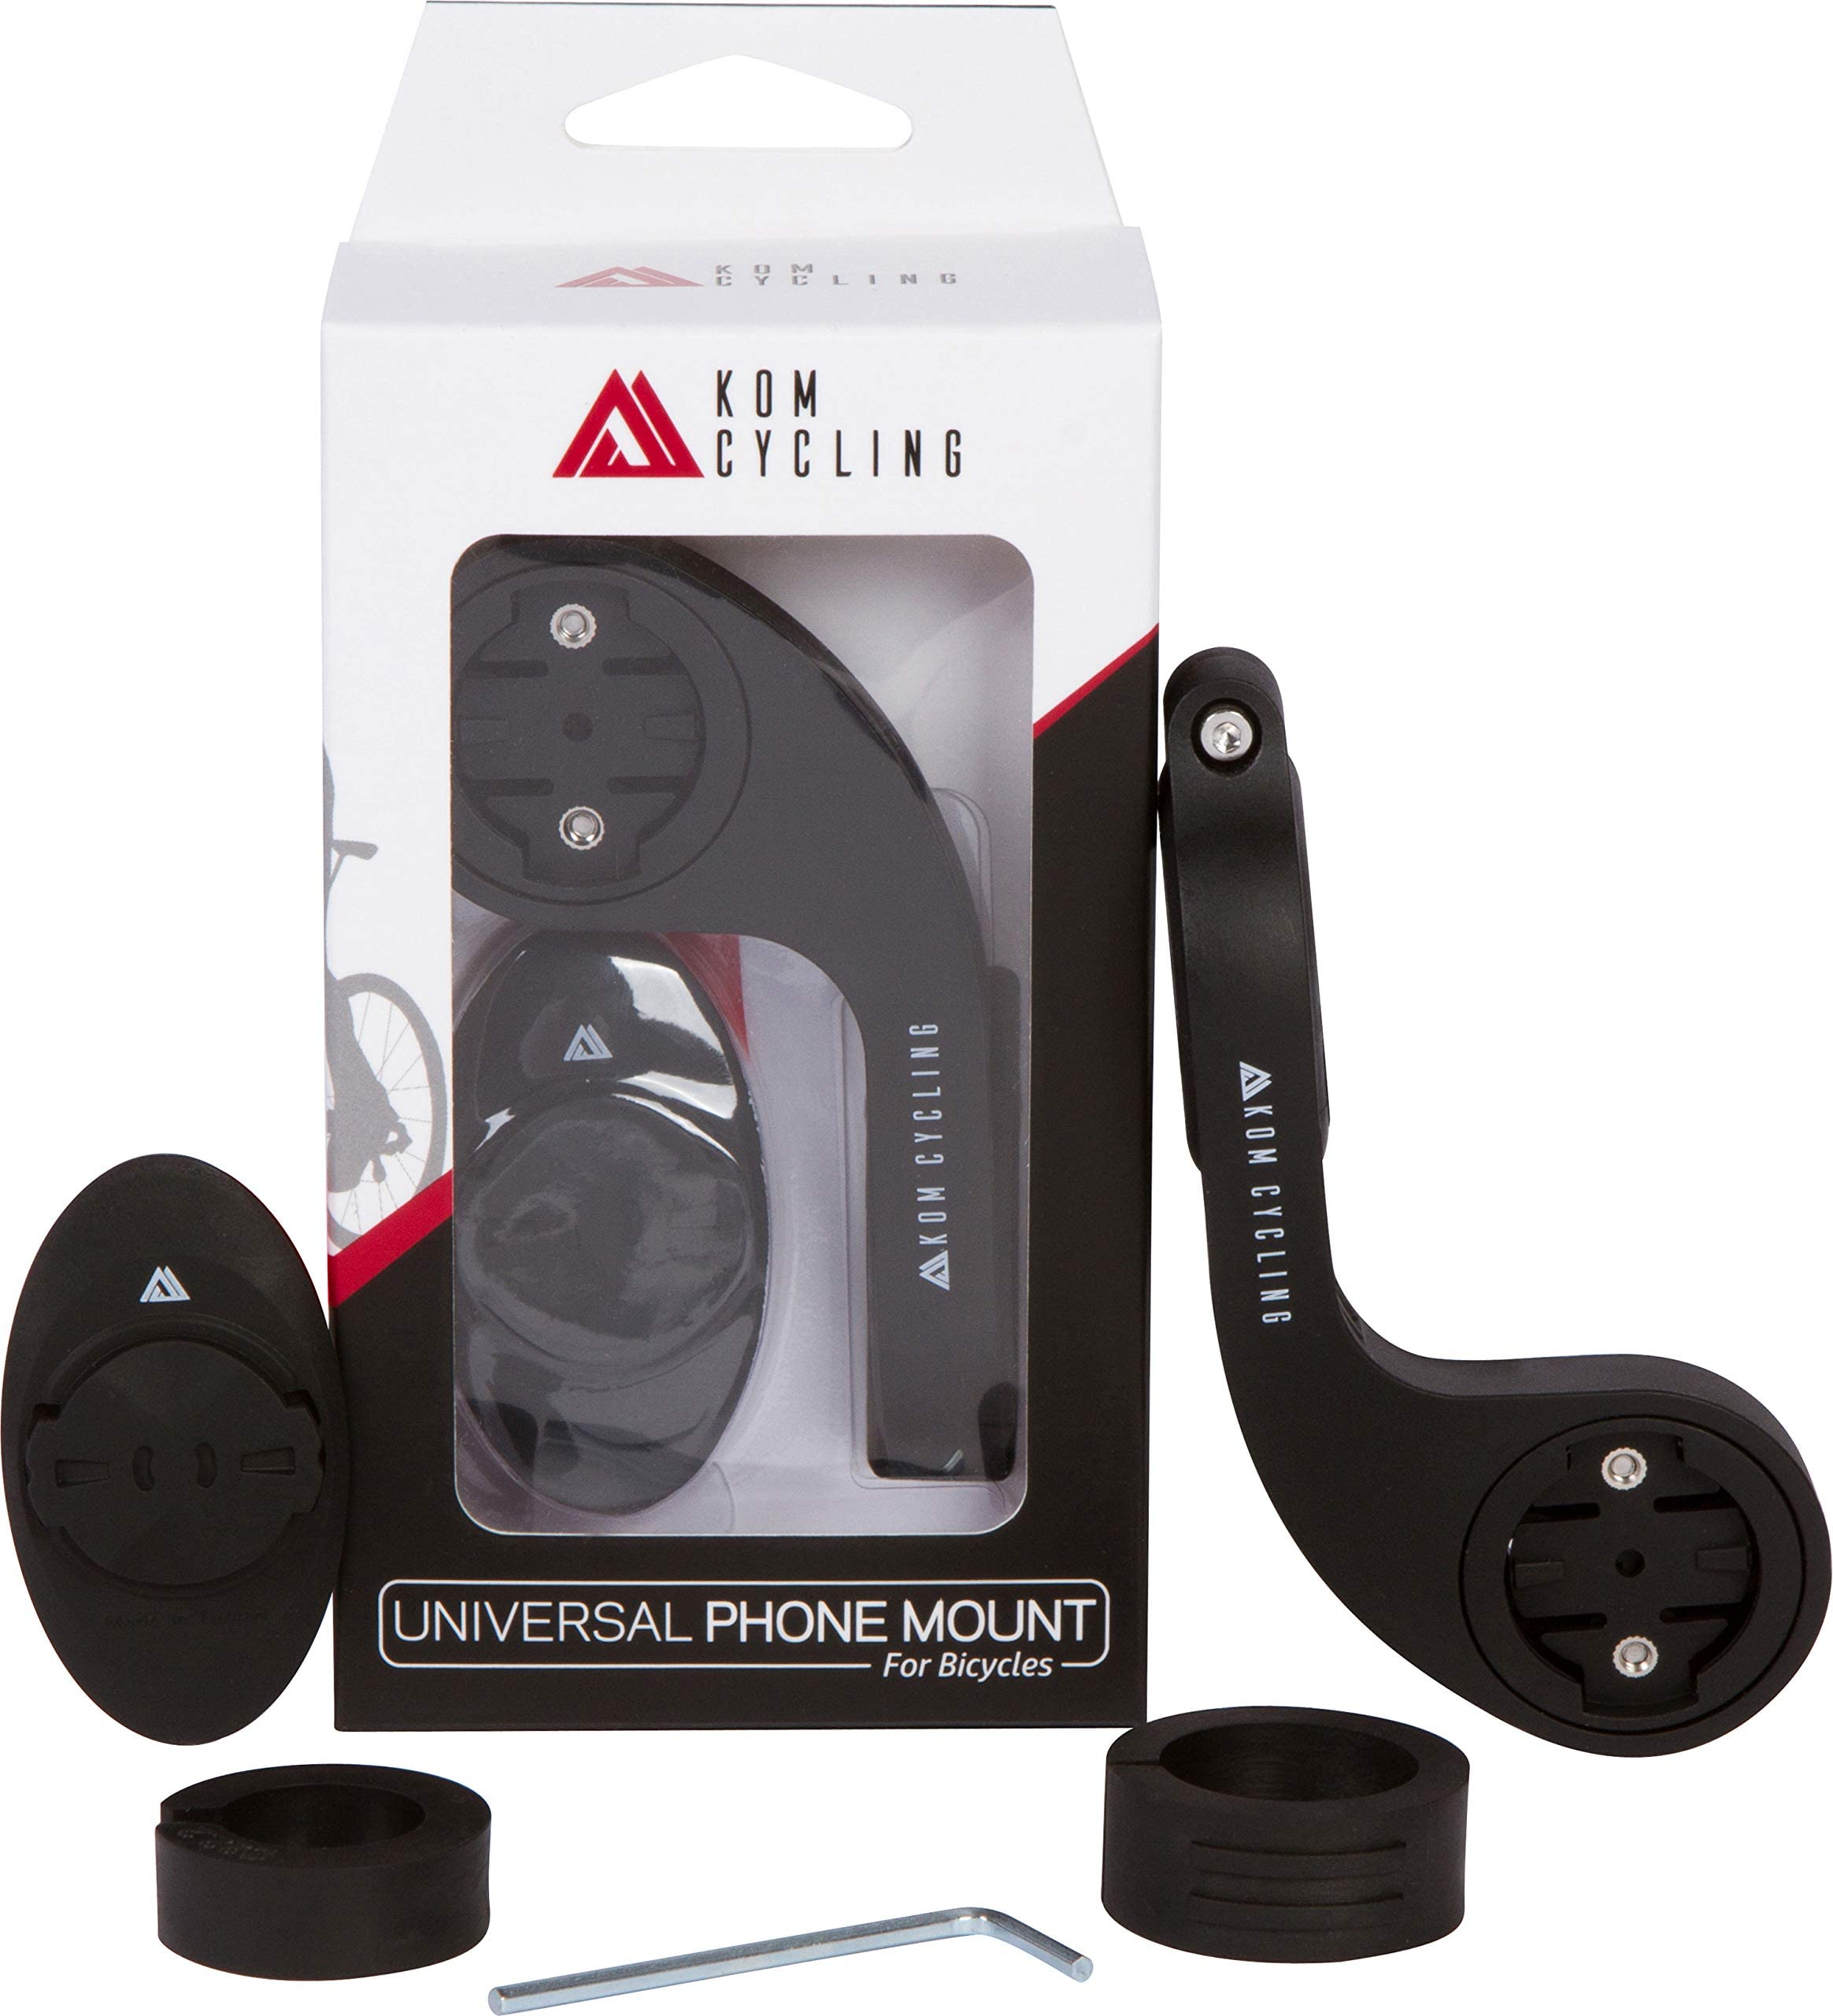 Ships from US Pack of 3 GARMIN Edge Bike Phone Mount Sticker Adapters